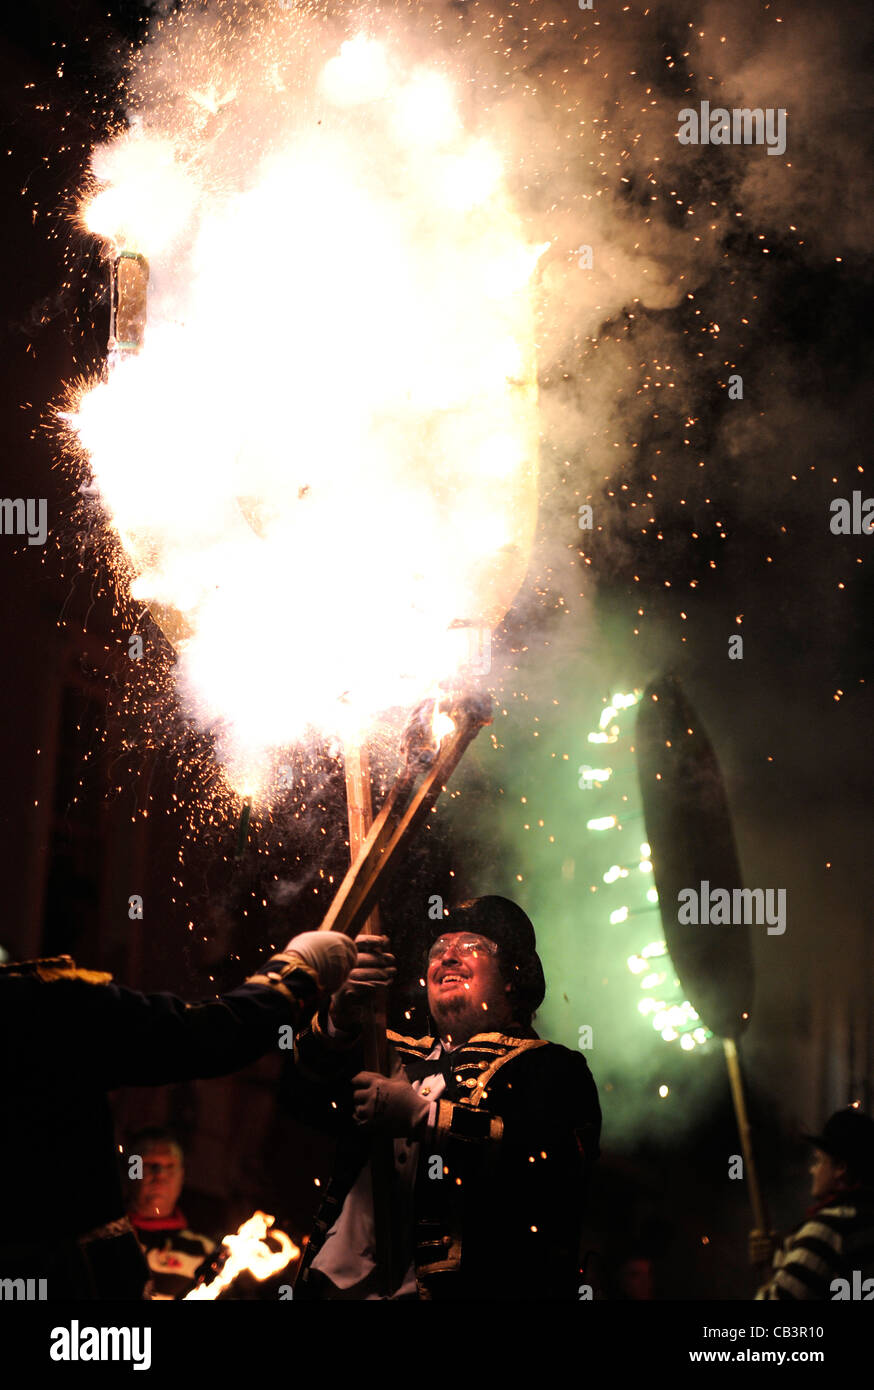 Remembrance poppy lit during Lewes Bonfire Night Celebrations. - Stock Image